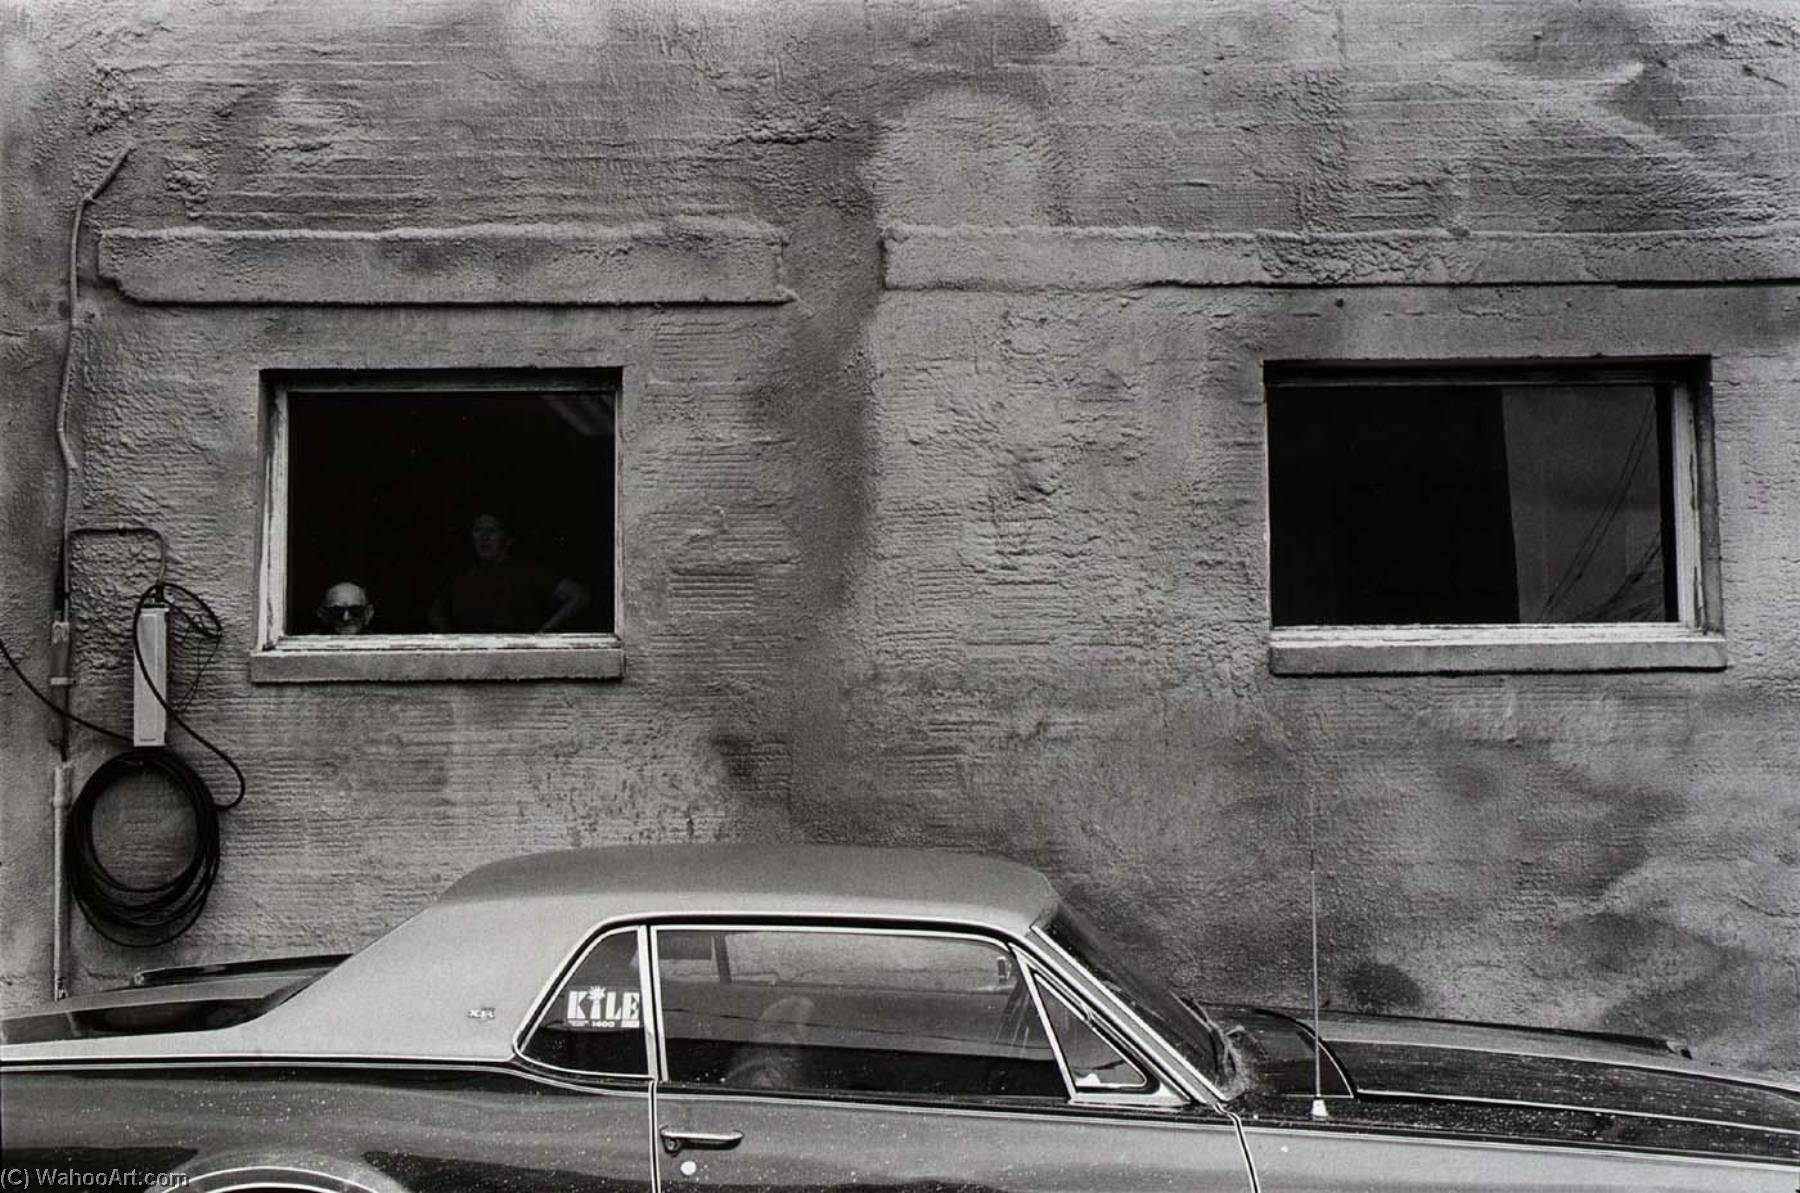 Untitled (Car and 2 Windows) by Paul Hester | WahooArt.com